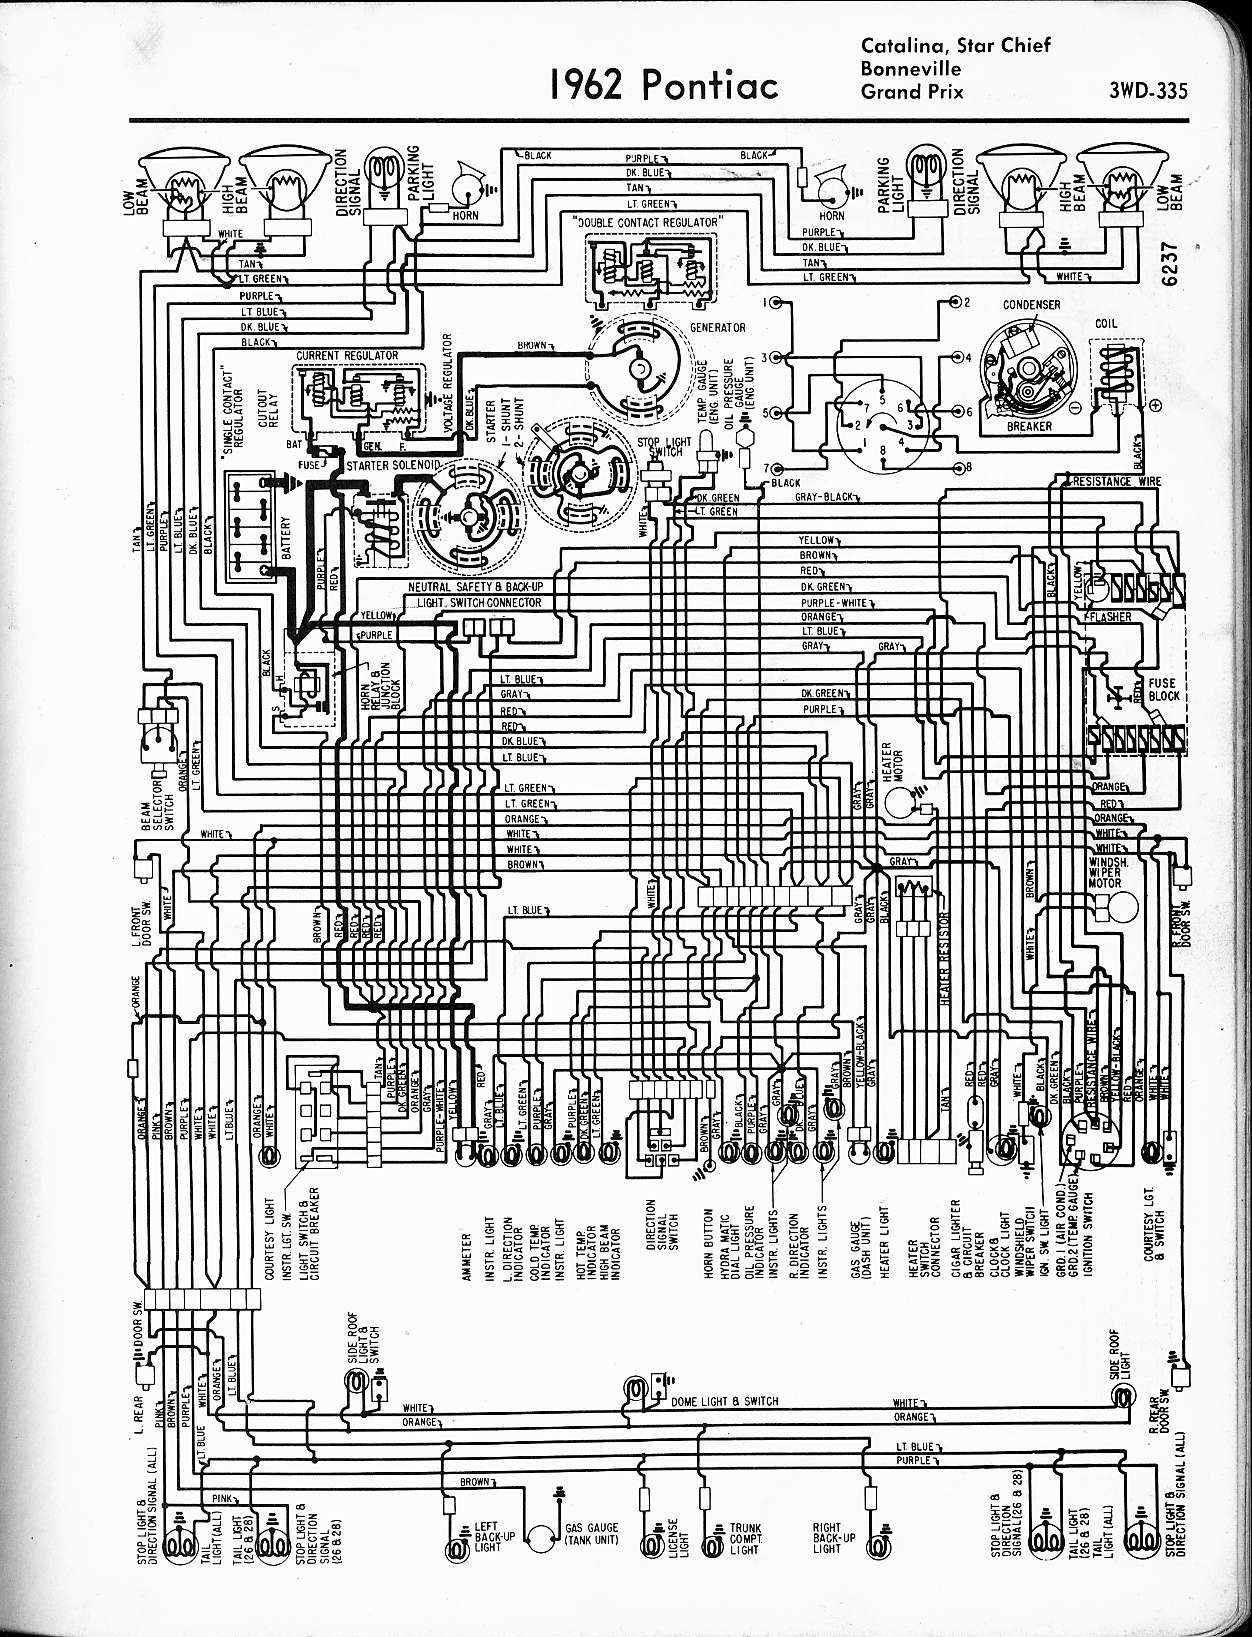 2006 Pontiac Grand Prix Speaker Wiring Diagram from annawiringdiagram.com